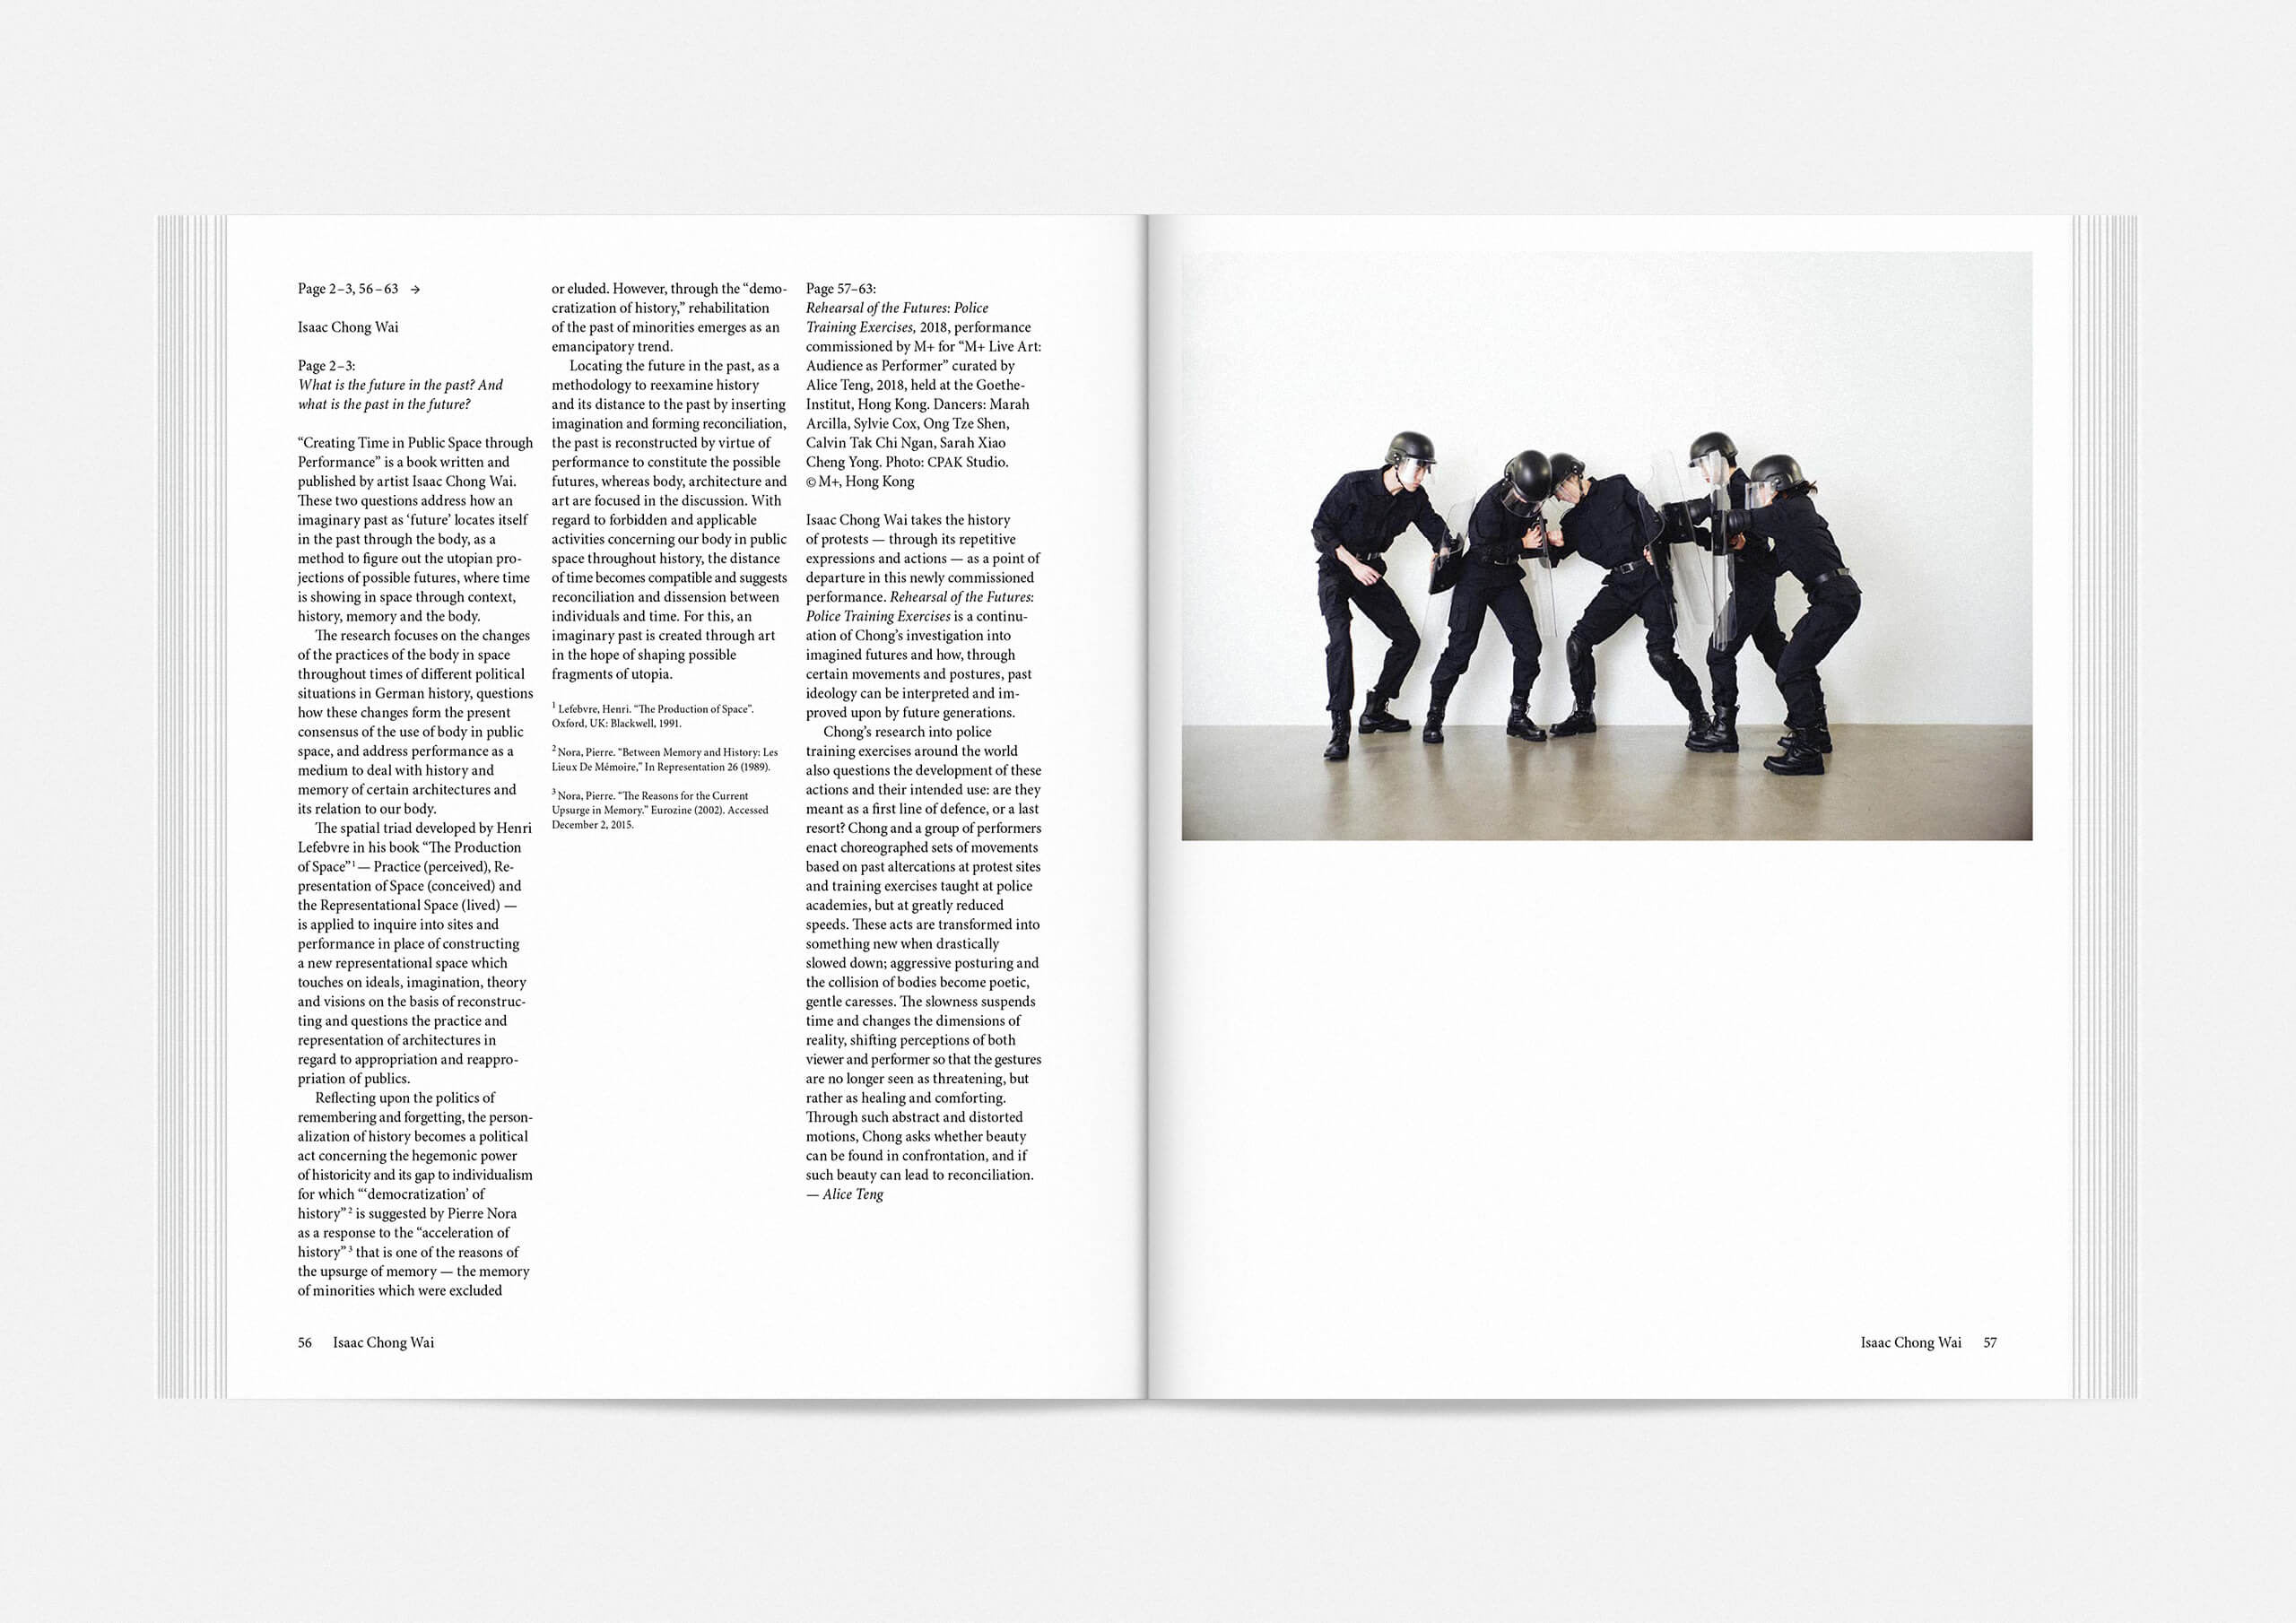 http://www.neuegestaltung.de/media/pages/clients/protocollum-issue-no-05/bf1dea58ab-1597415141/protocollum-5-page-5657-ng.jpg